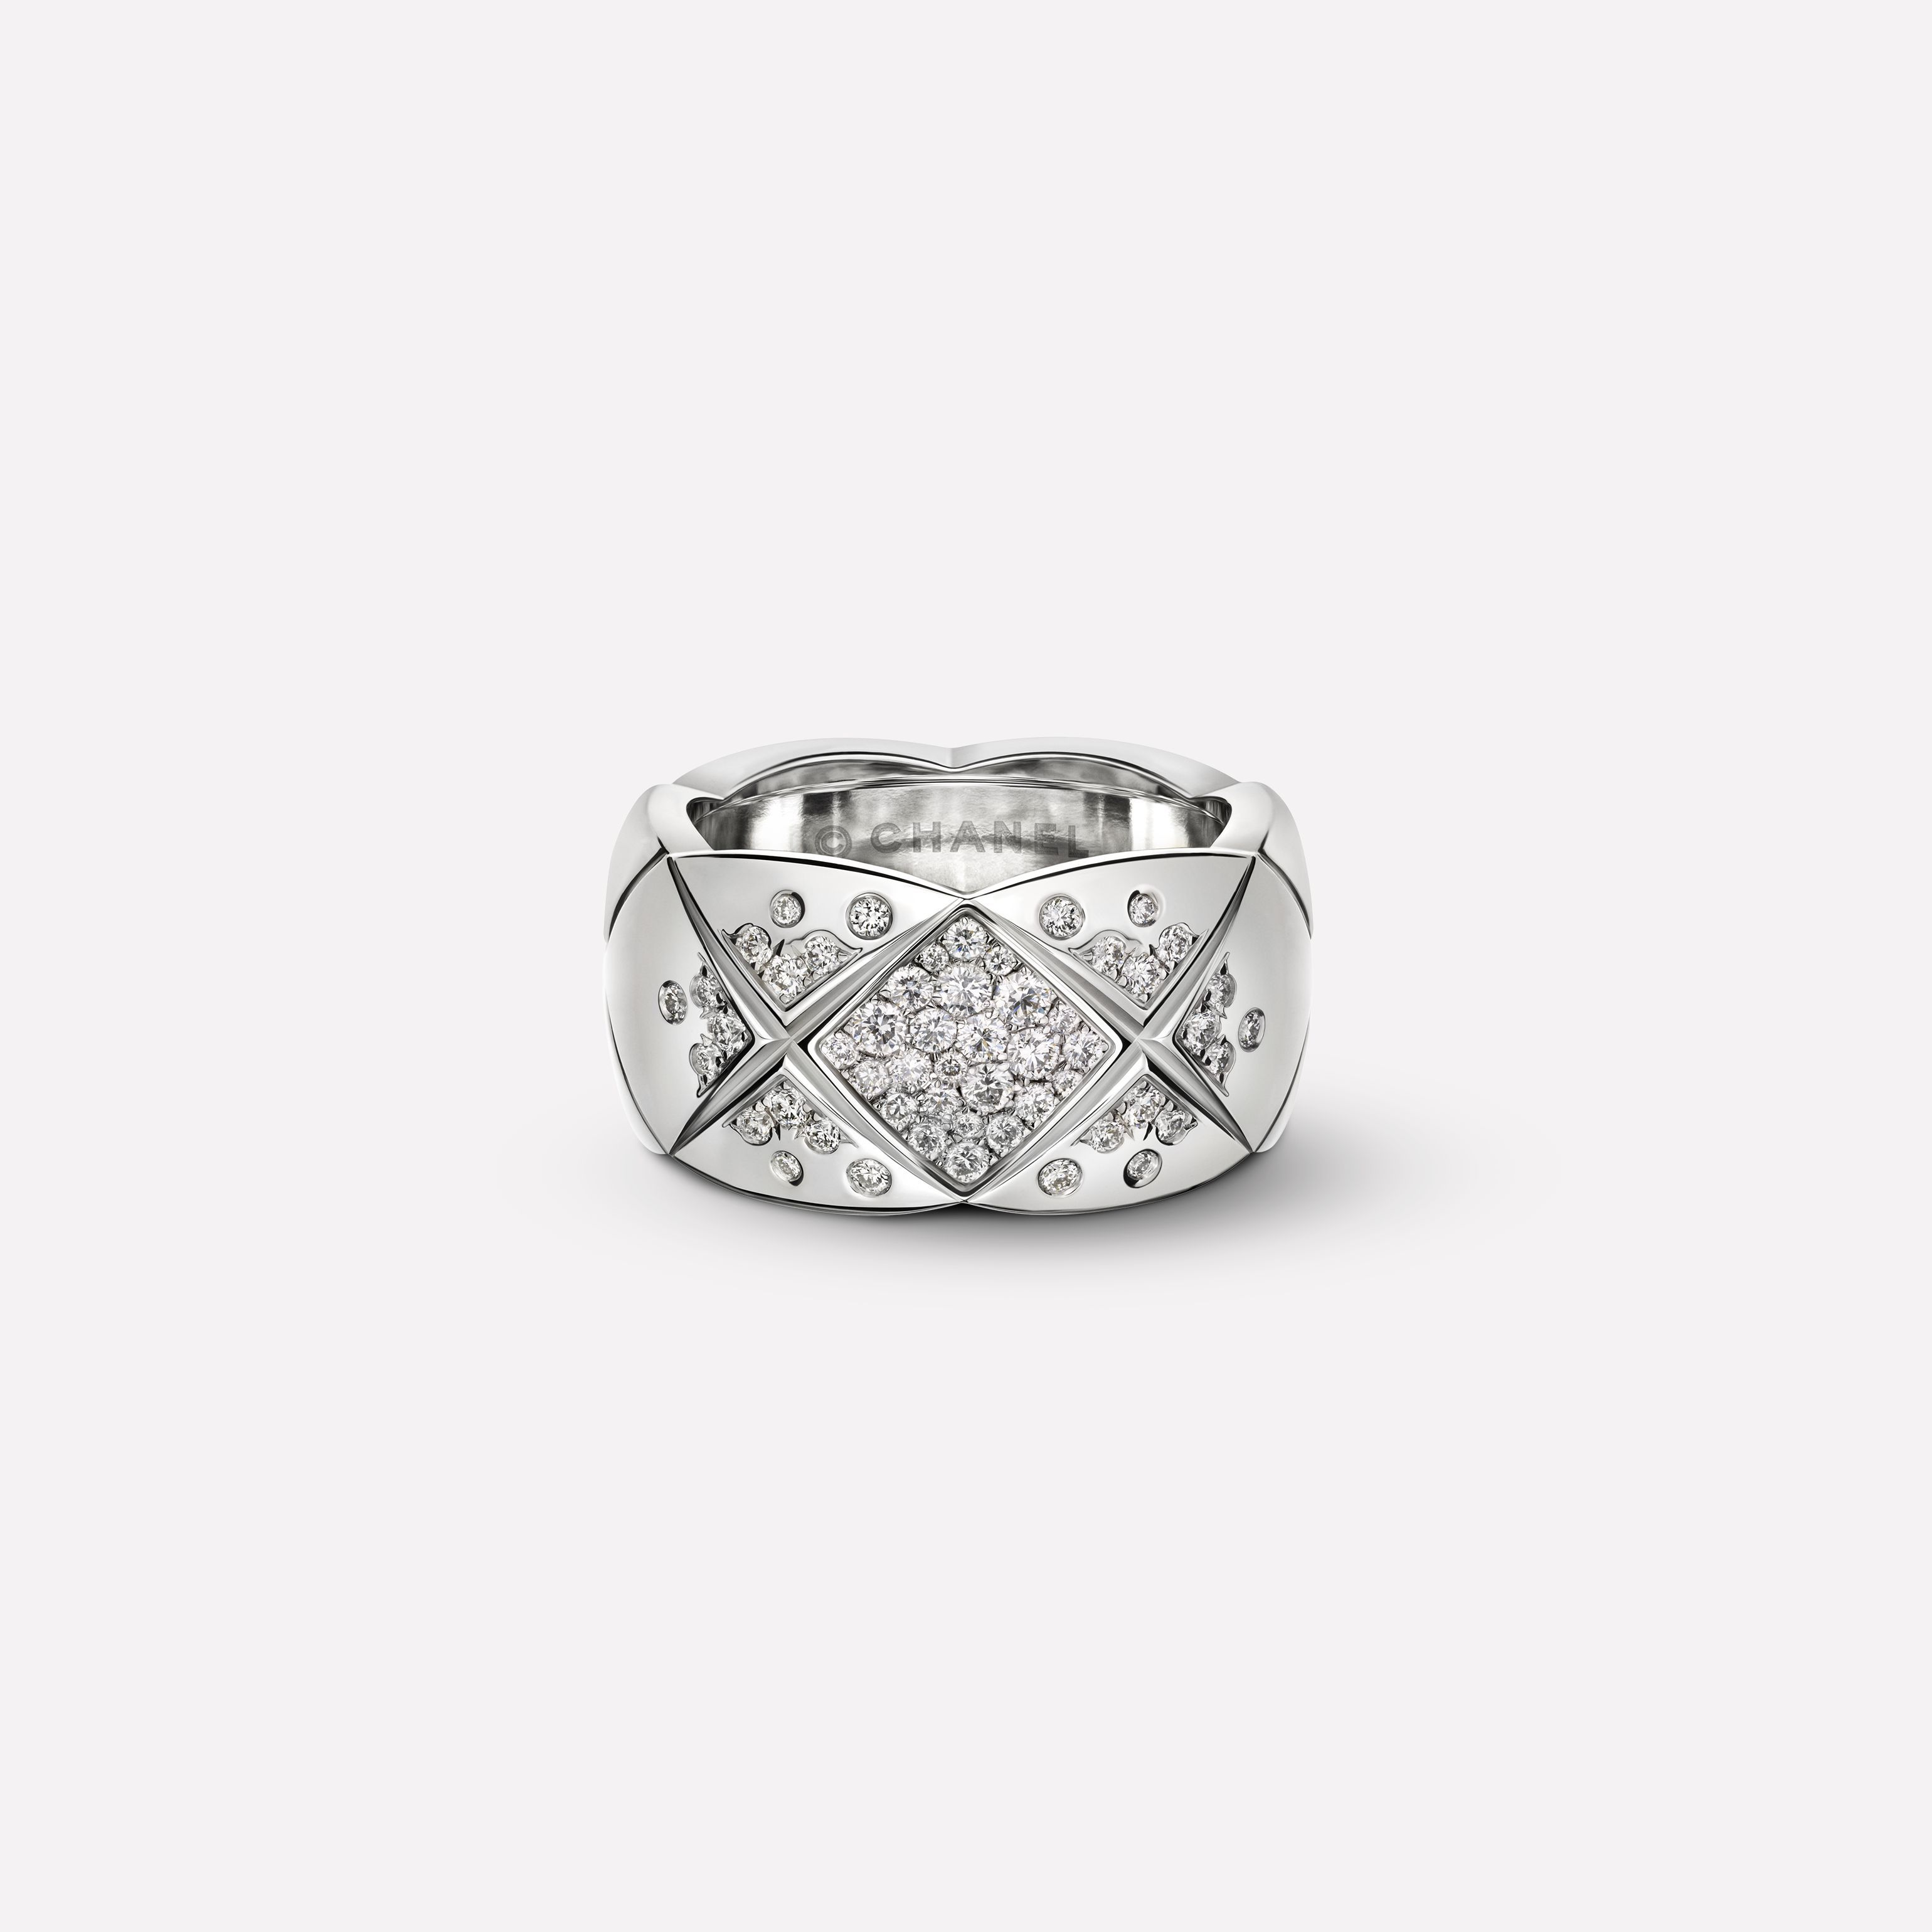 Coco Crush Ring Coco Crush Ring Medium Version In 18k White Gold And Diamonds J10863 Chanel Jewelry Chanel Jewelry Fine Jewelry